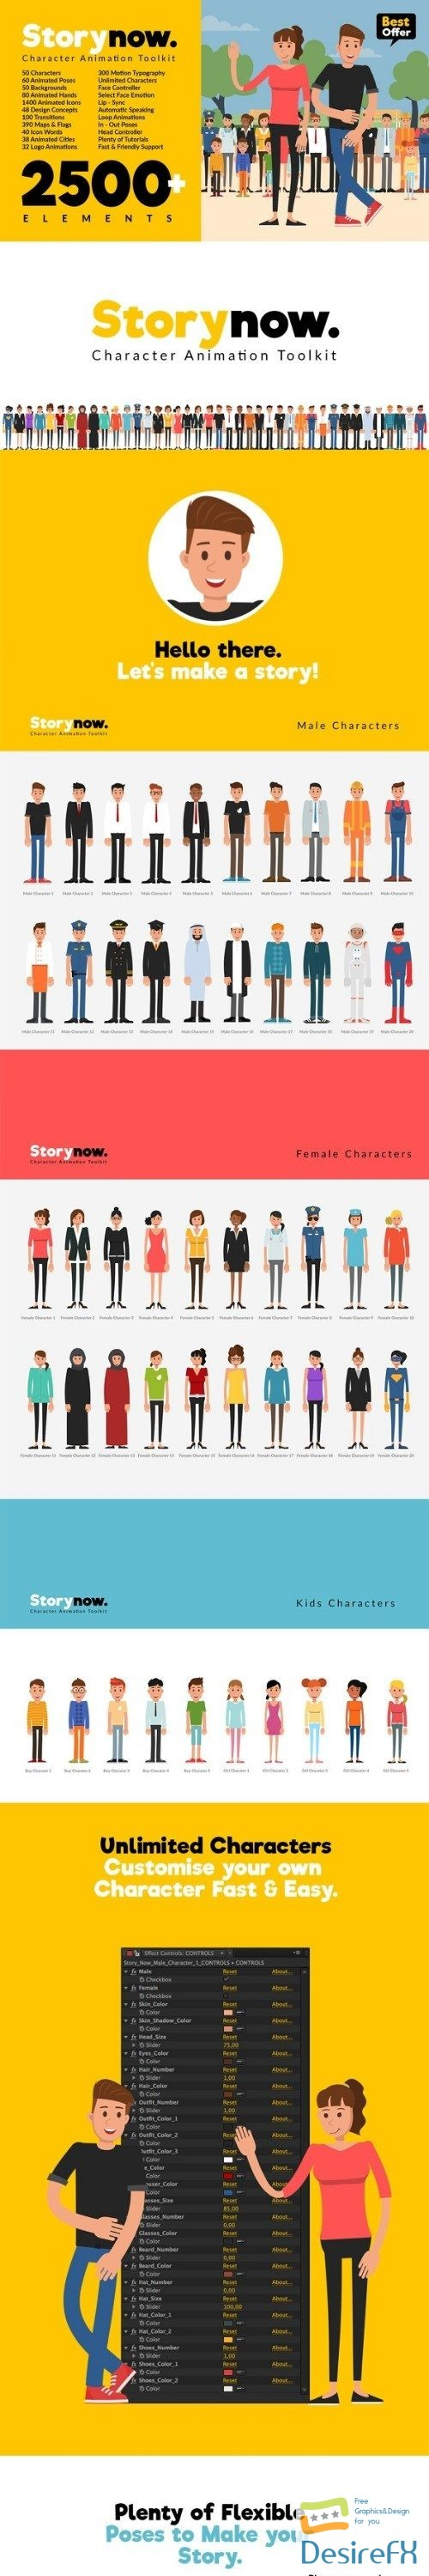 after-effects-projects - Videohive Story Now   Character Animation Explainer Toolkit 22706405